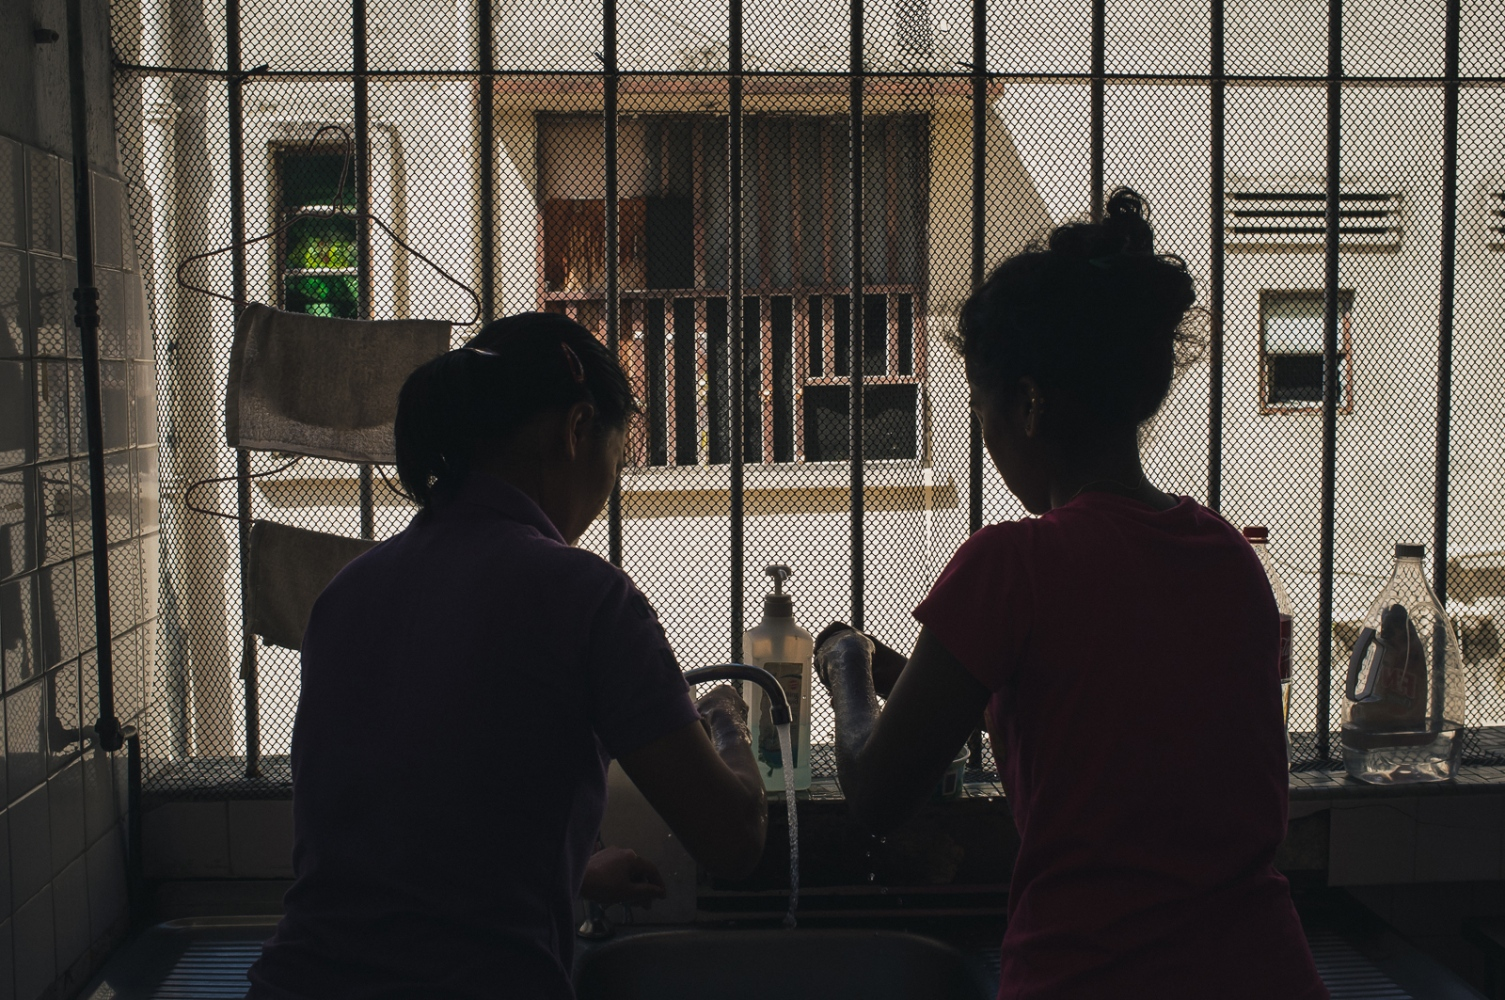 Foreign domestic workers housed at a shelter run by The Humanitarian Organisation for Migration Economics (HOME), an organisation that provides direct assistance to men and women migrants and victims of human trafficking and forced labour. Abuse of domestic workers ranges from physical and verbal abuse, sexual assault, punative action for perceived wrongs, violation of contracted rights and witheld pay. As Foreign domestic workers in Singapore are required by law to live with their employer, many who suffer abuses feel they have no choice but to run away and seek shelter with their embassy or NGOs such as HOME.